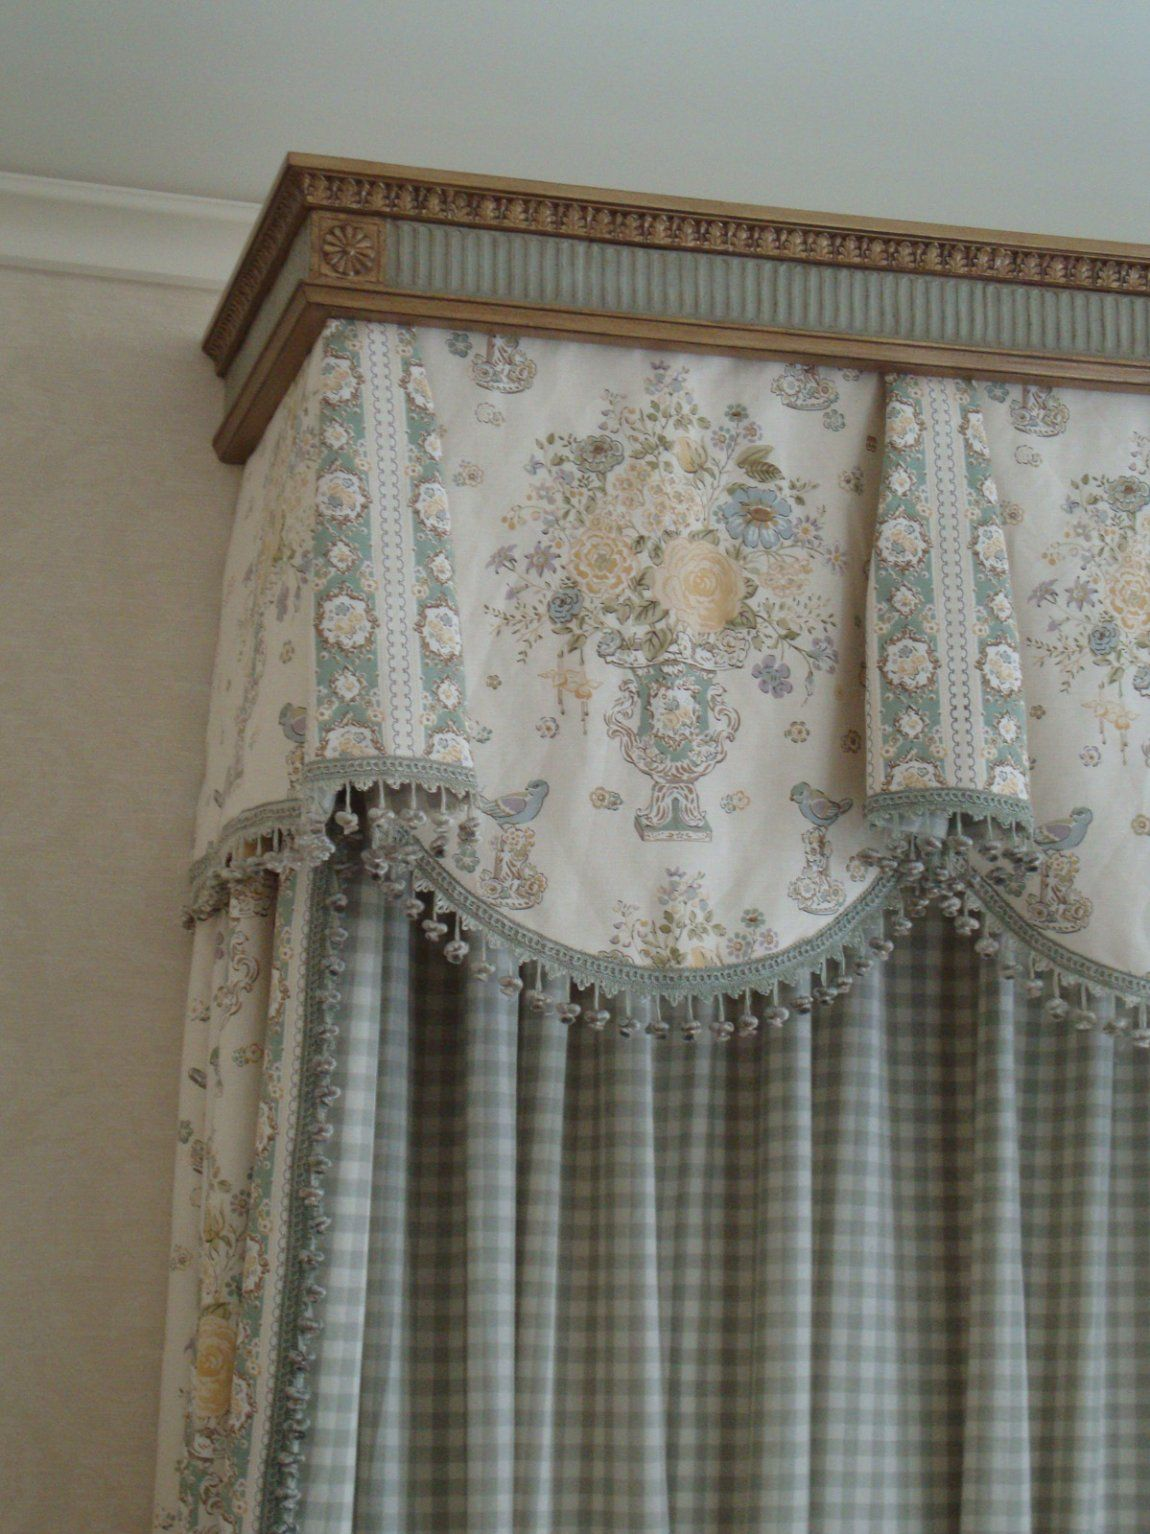 Kmart Valances Curtain For Bedroom Scarf Valance Window Ideas Living Room Daybed Bedding Sets Sears Making Cornice Board With Foam Cur Farbela Perdeler Ev Icin